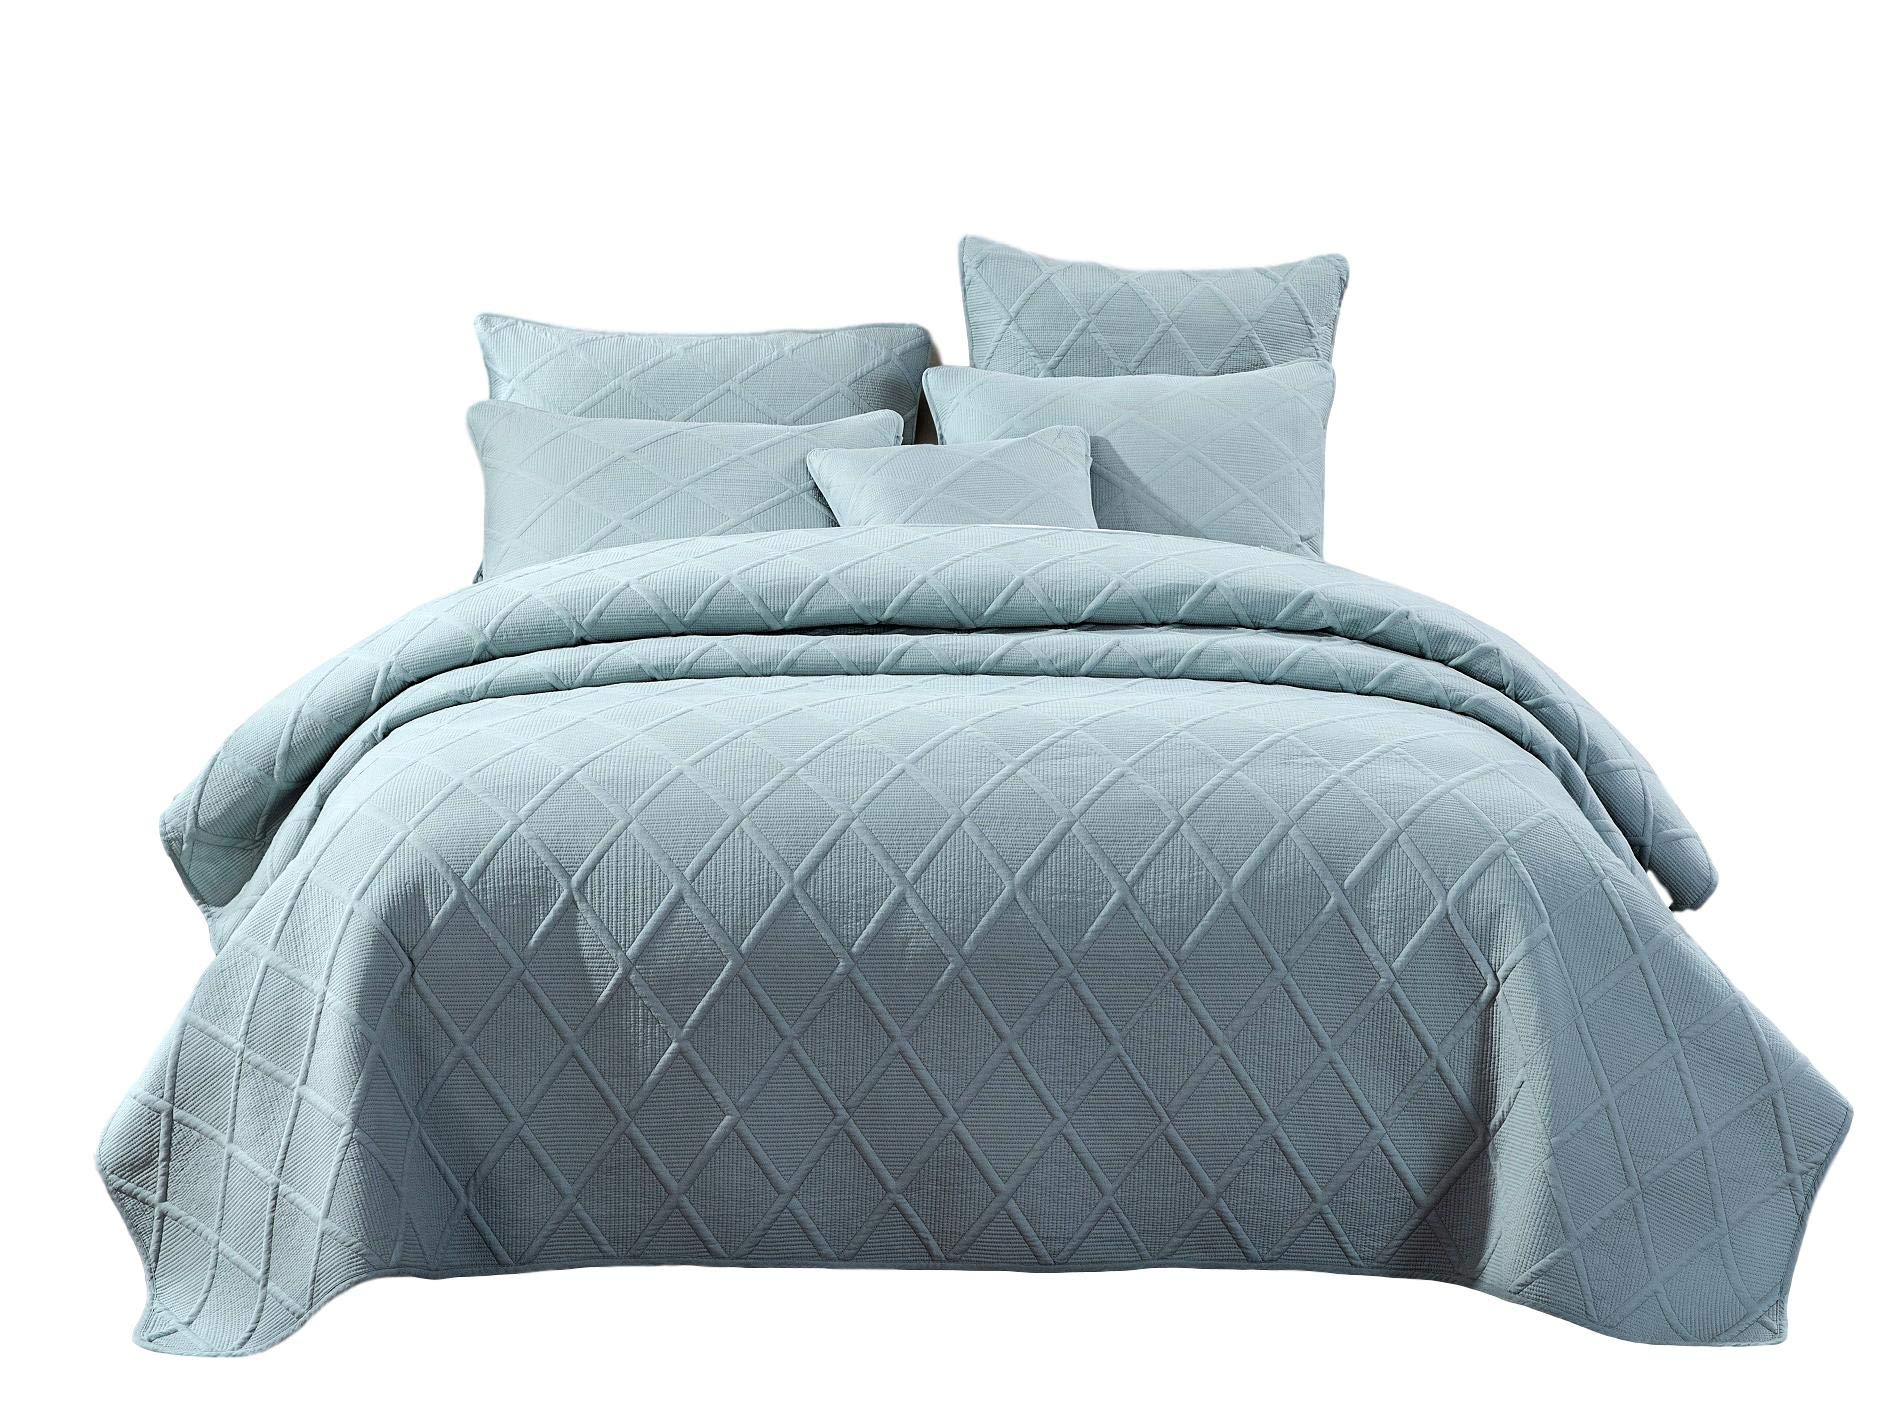 Tache Solid Seafoam Blue Soothing Pastel Soft Cotton Geometric Diamond Stitch Pattern Lightweight Quilted Bedspread 3 Piece Set, California King